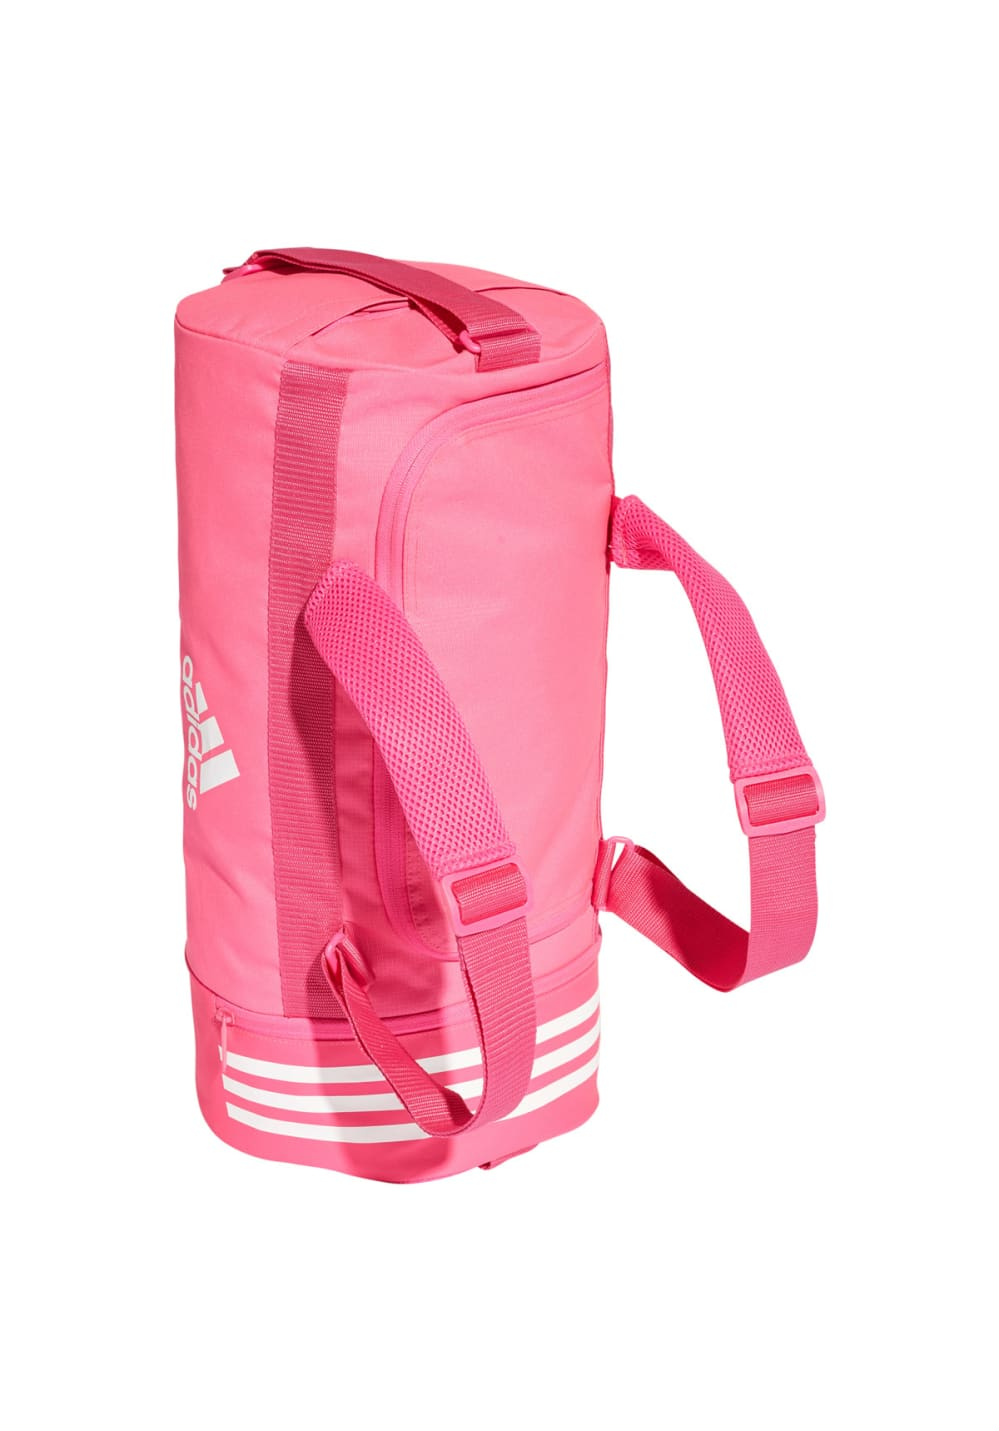 4ac21d56bee7 adidas Convertible 3-Stripes Duffel Bag Small - Sports bags - Pink ...